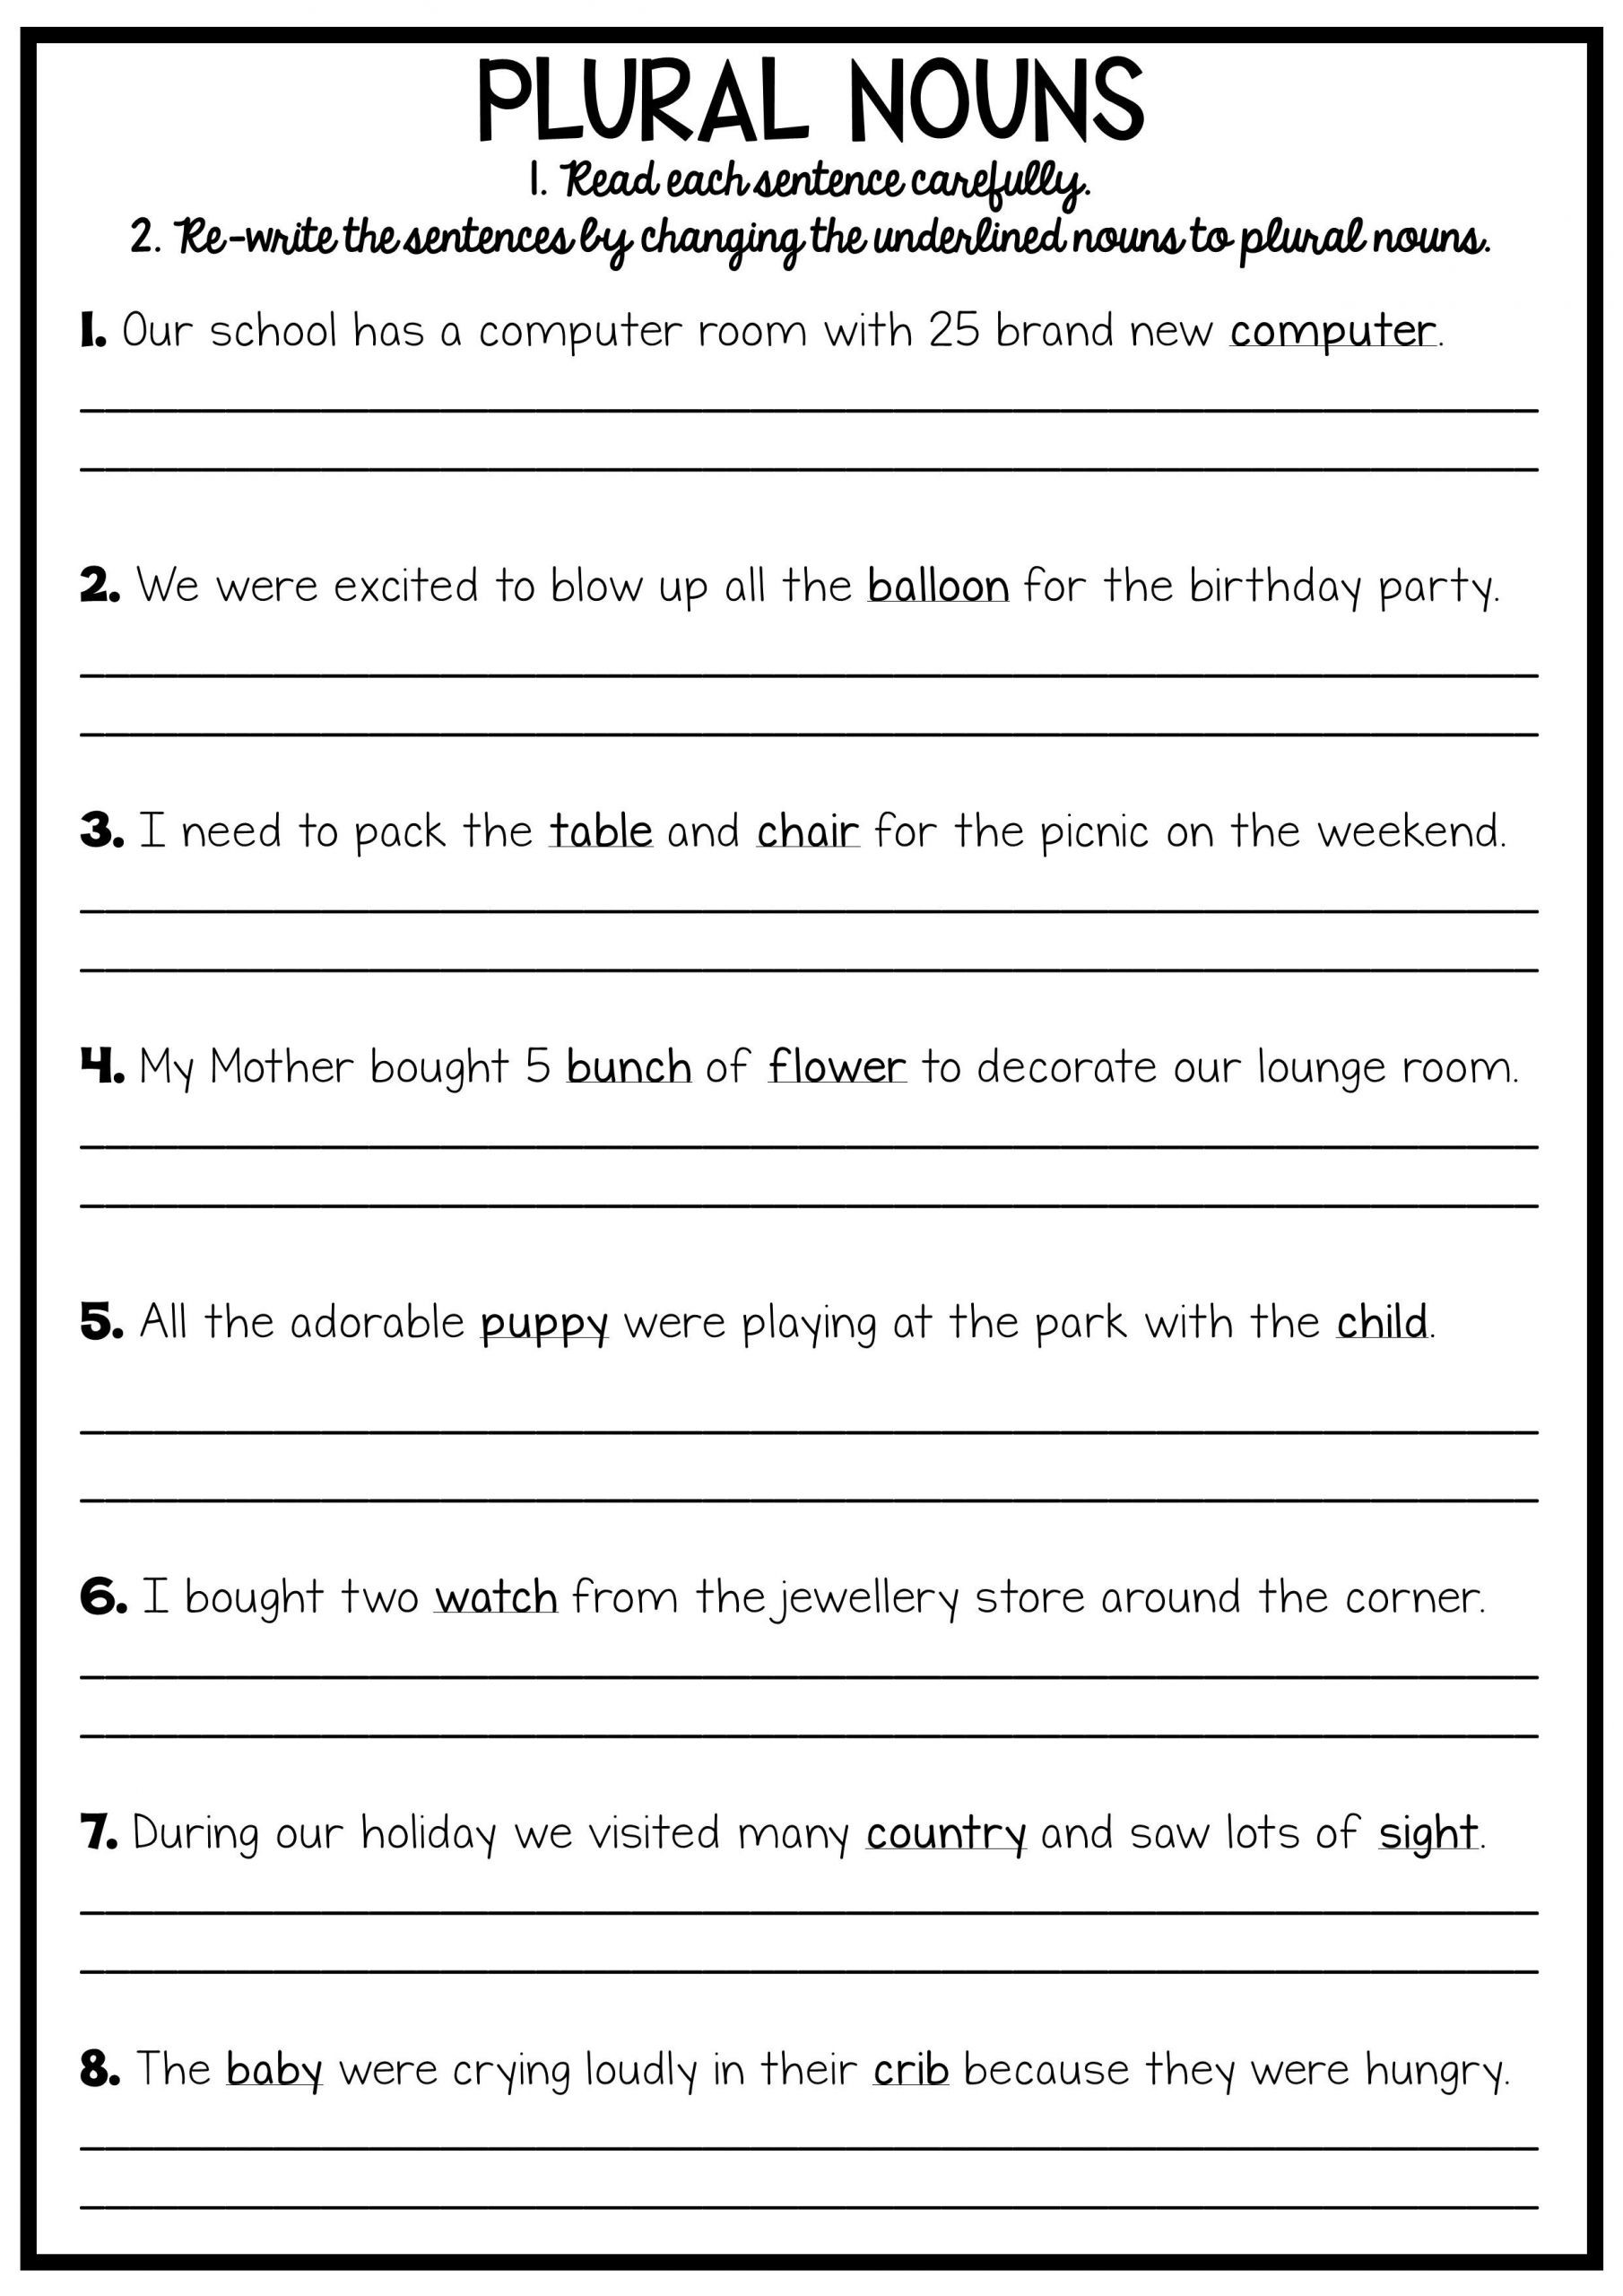 8th Grade English Worksheets Grammar Worksheets 8th Grade English Printable Reading